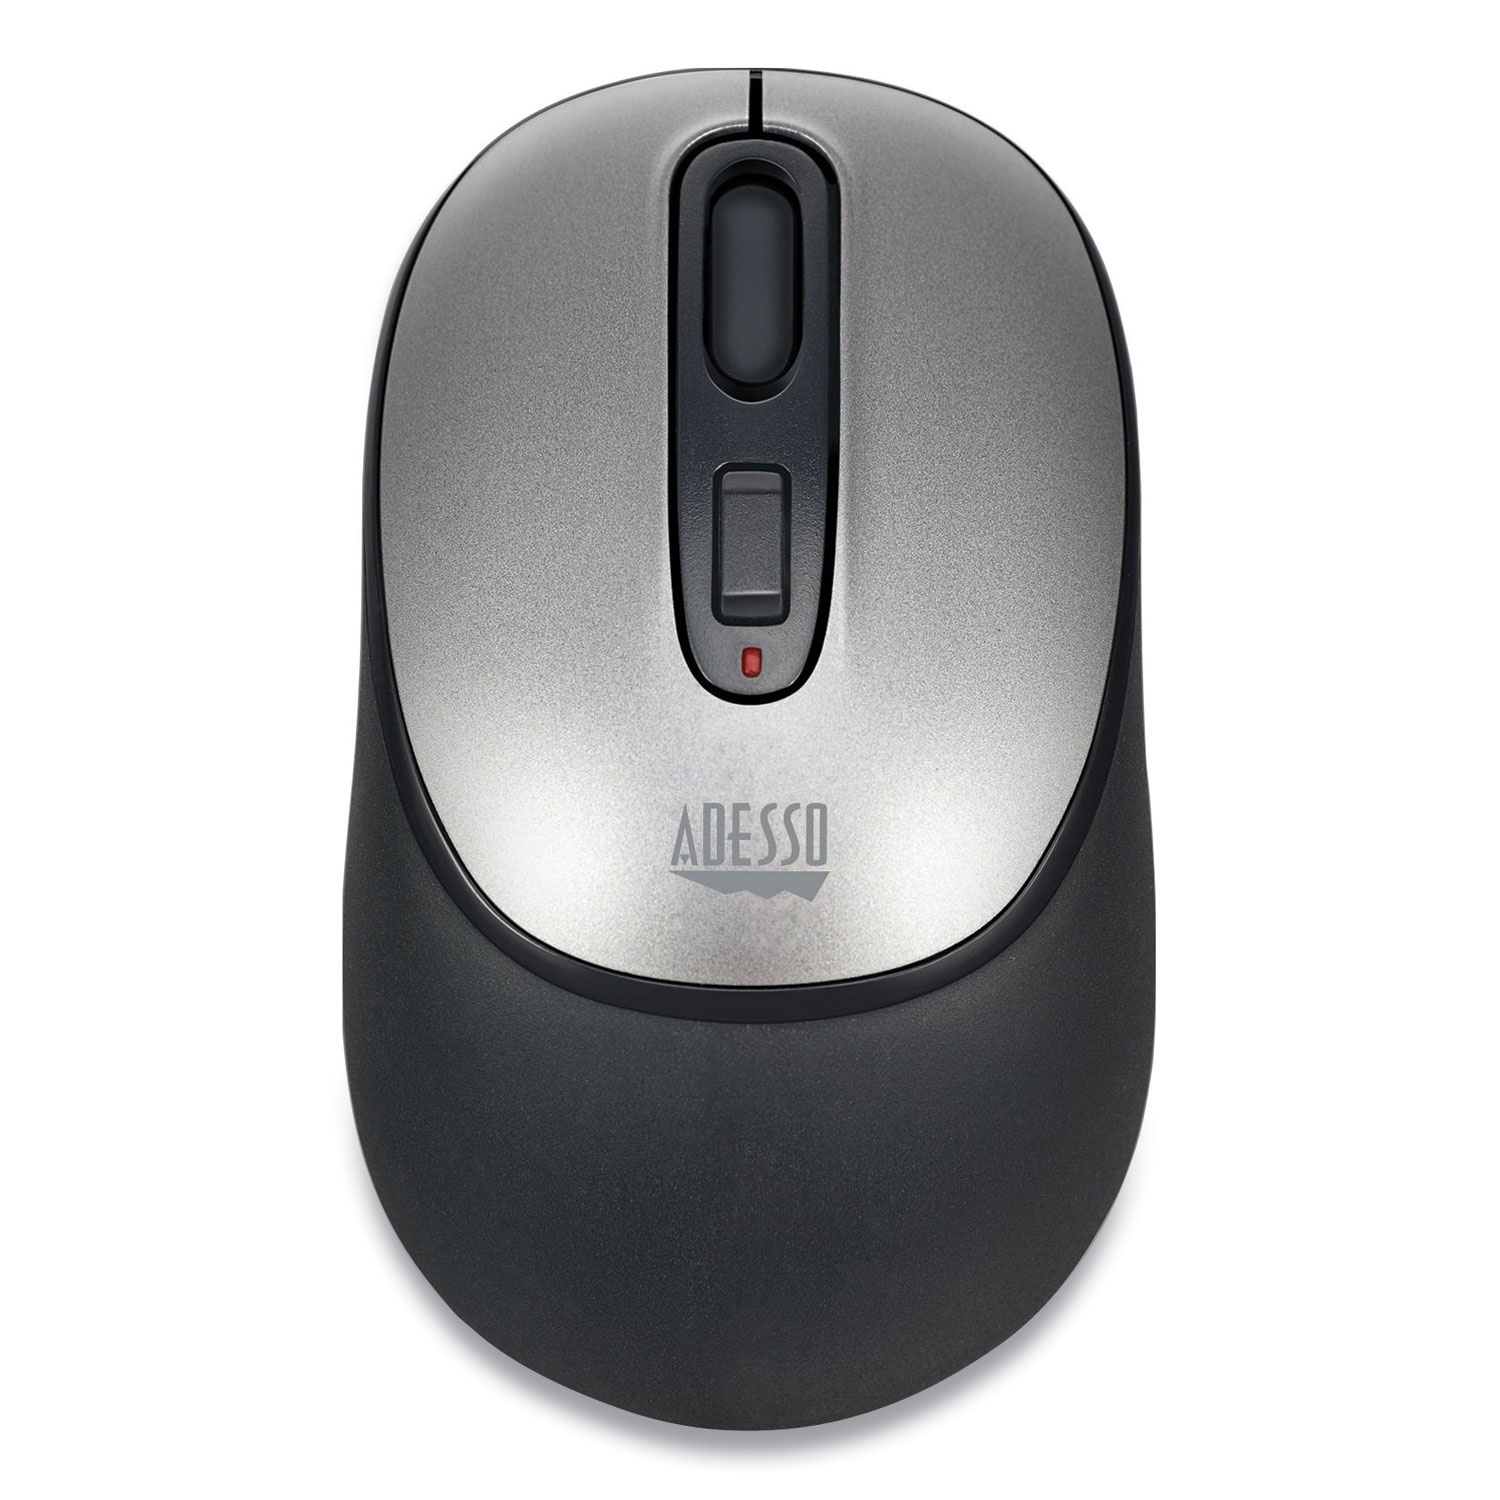 Adesso iMouse A10 Antimicrobial Wireless Mouse, 2.4 GHz Frequency/30 ft Wireless Range, Left/Right Hand Use, Black/Silver